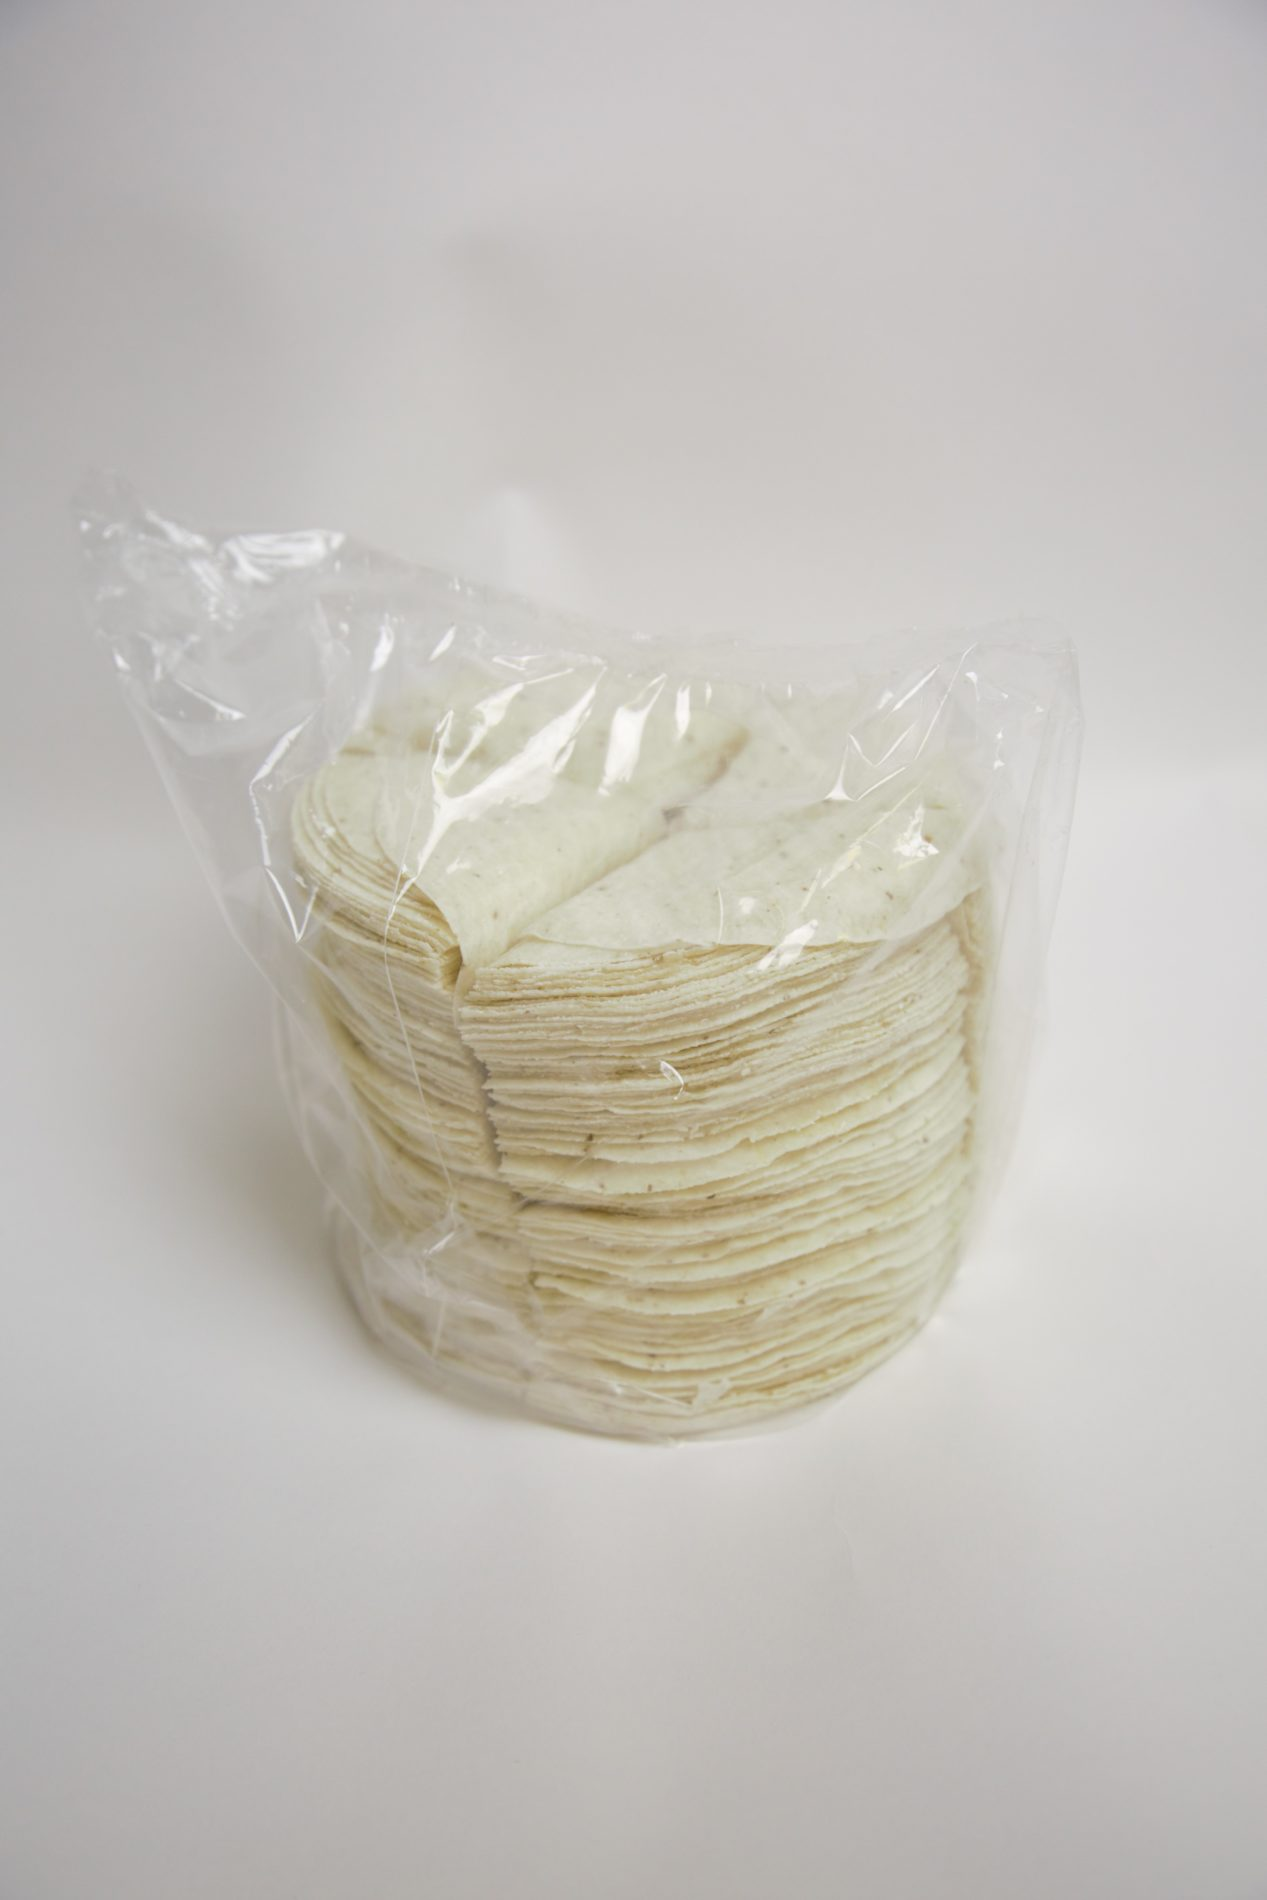 Rudy's 4 Part Thin White Stacked Chip Raw 6/15DZ